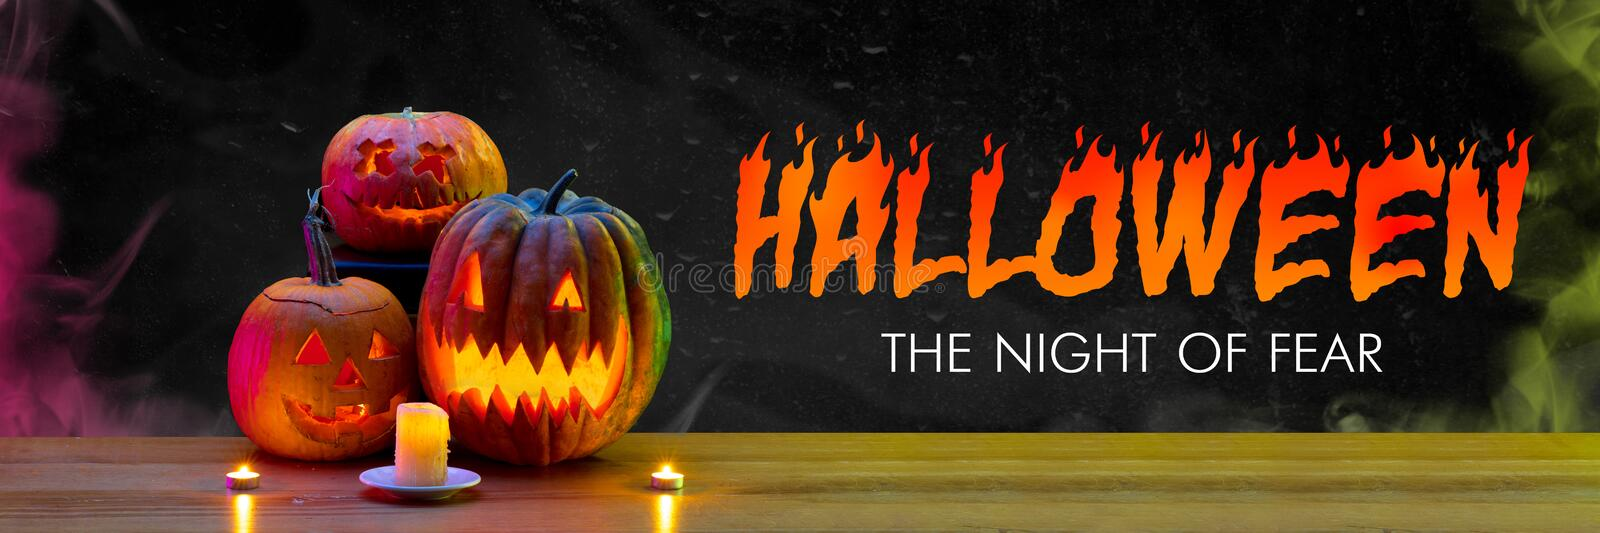 Scary pumpkins on black background, the night of fear. Fire flames and candles. Halloween, black friday, cyber monday, sales, autumn concept. Flyer for your stock photography